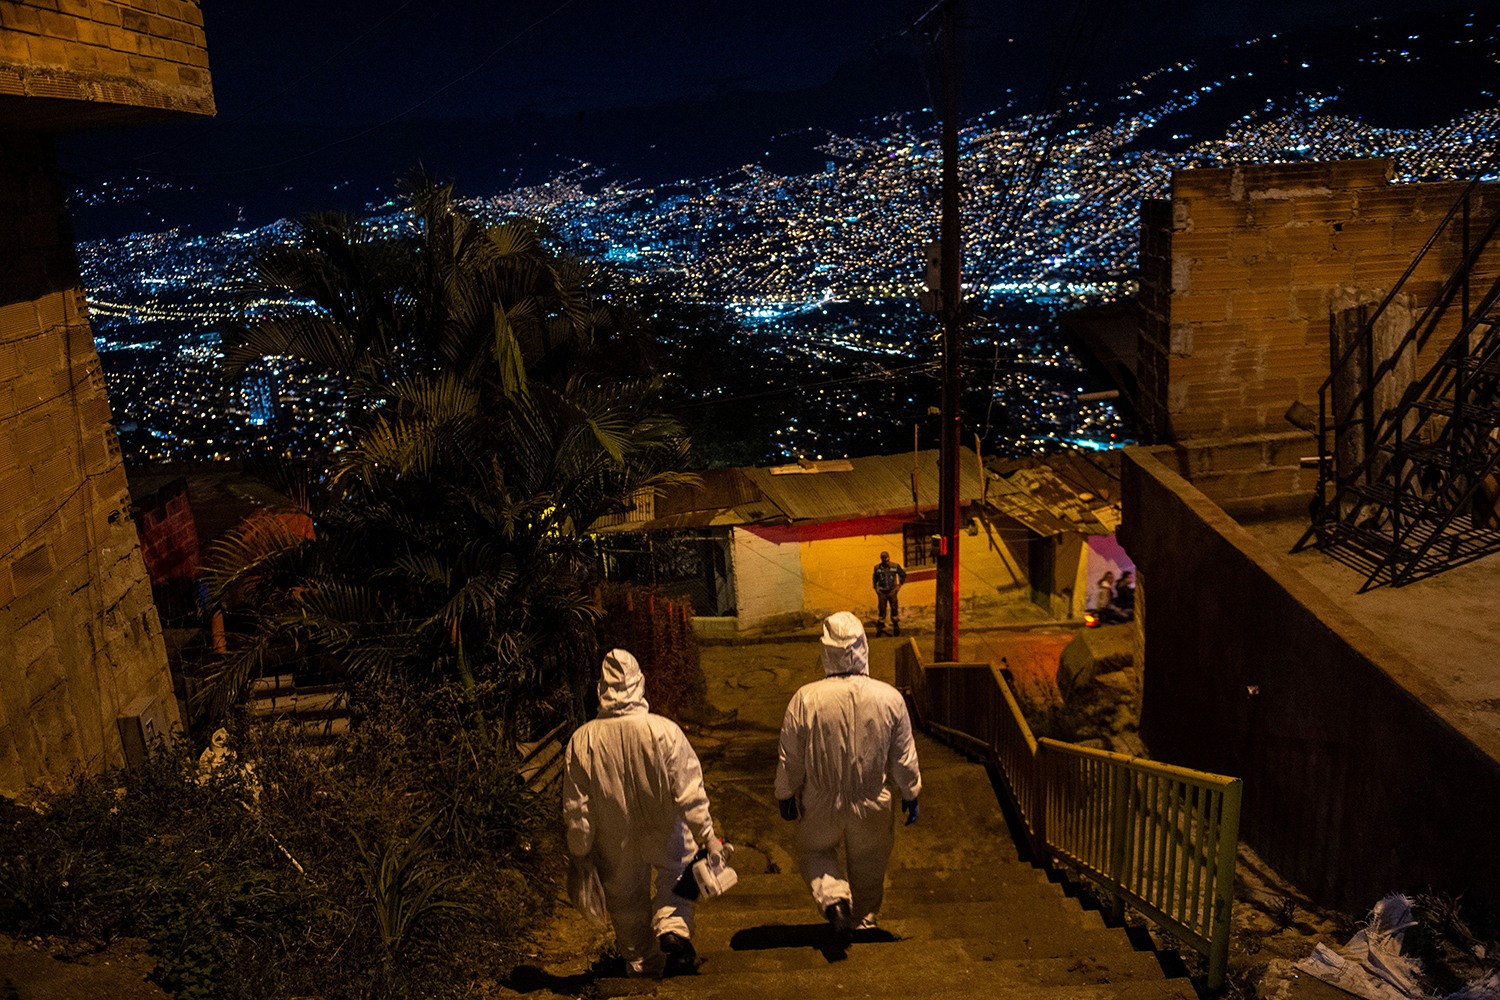 Paramedics leave a home after assisting a patient with symptoms of COVID-19 in Medellin, Colombia, on Jan. 12.  JOAQUIN SARMIENTO/AFP via Getty Images